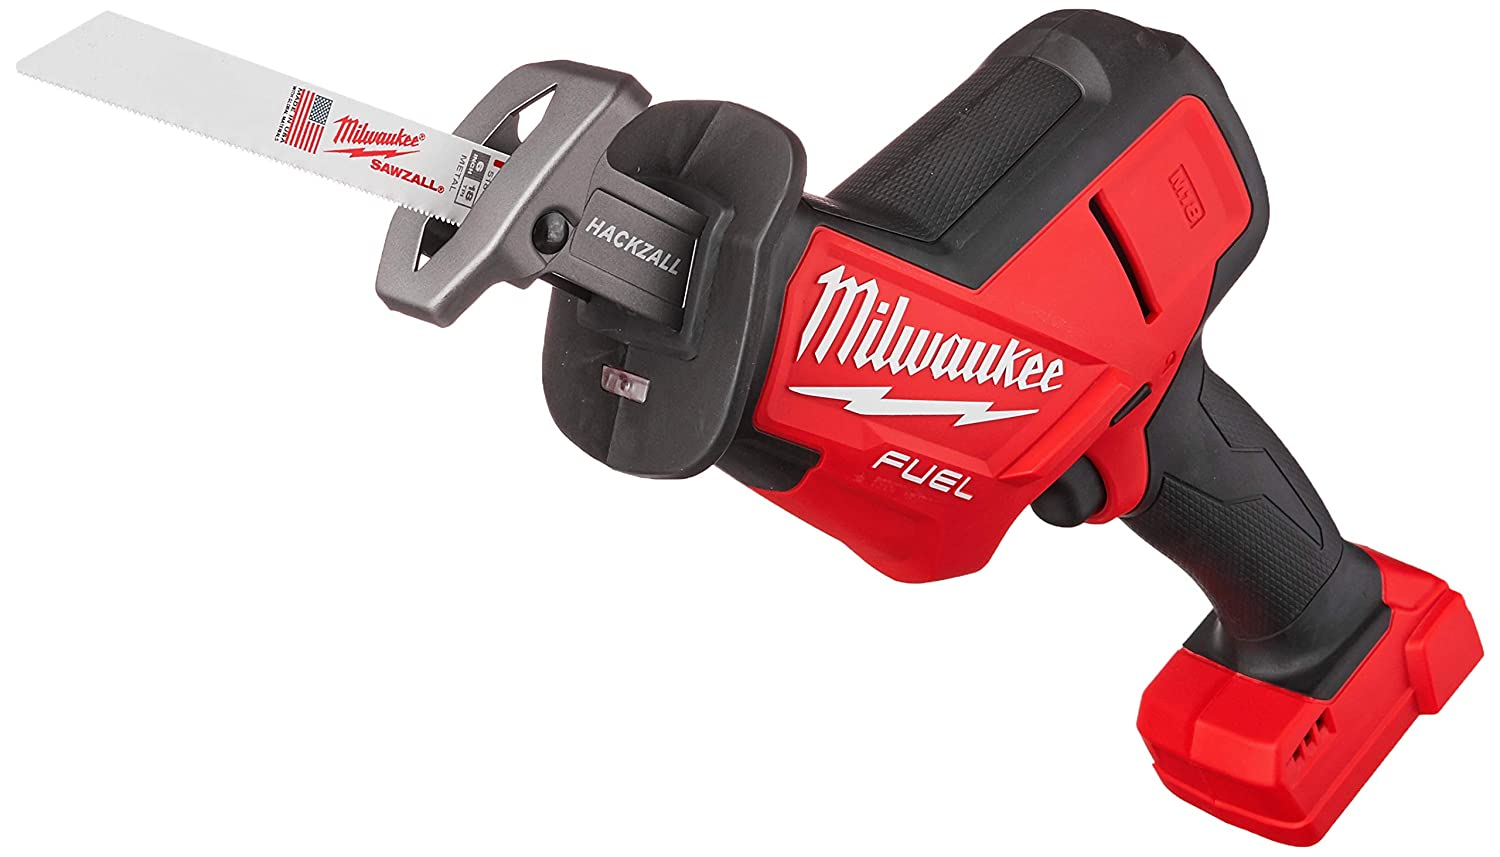 Milwaukee 2719-20 M18 FUEL Hackzall Bare Tool , Red, Black,